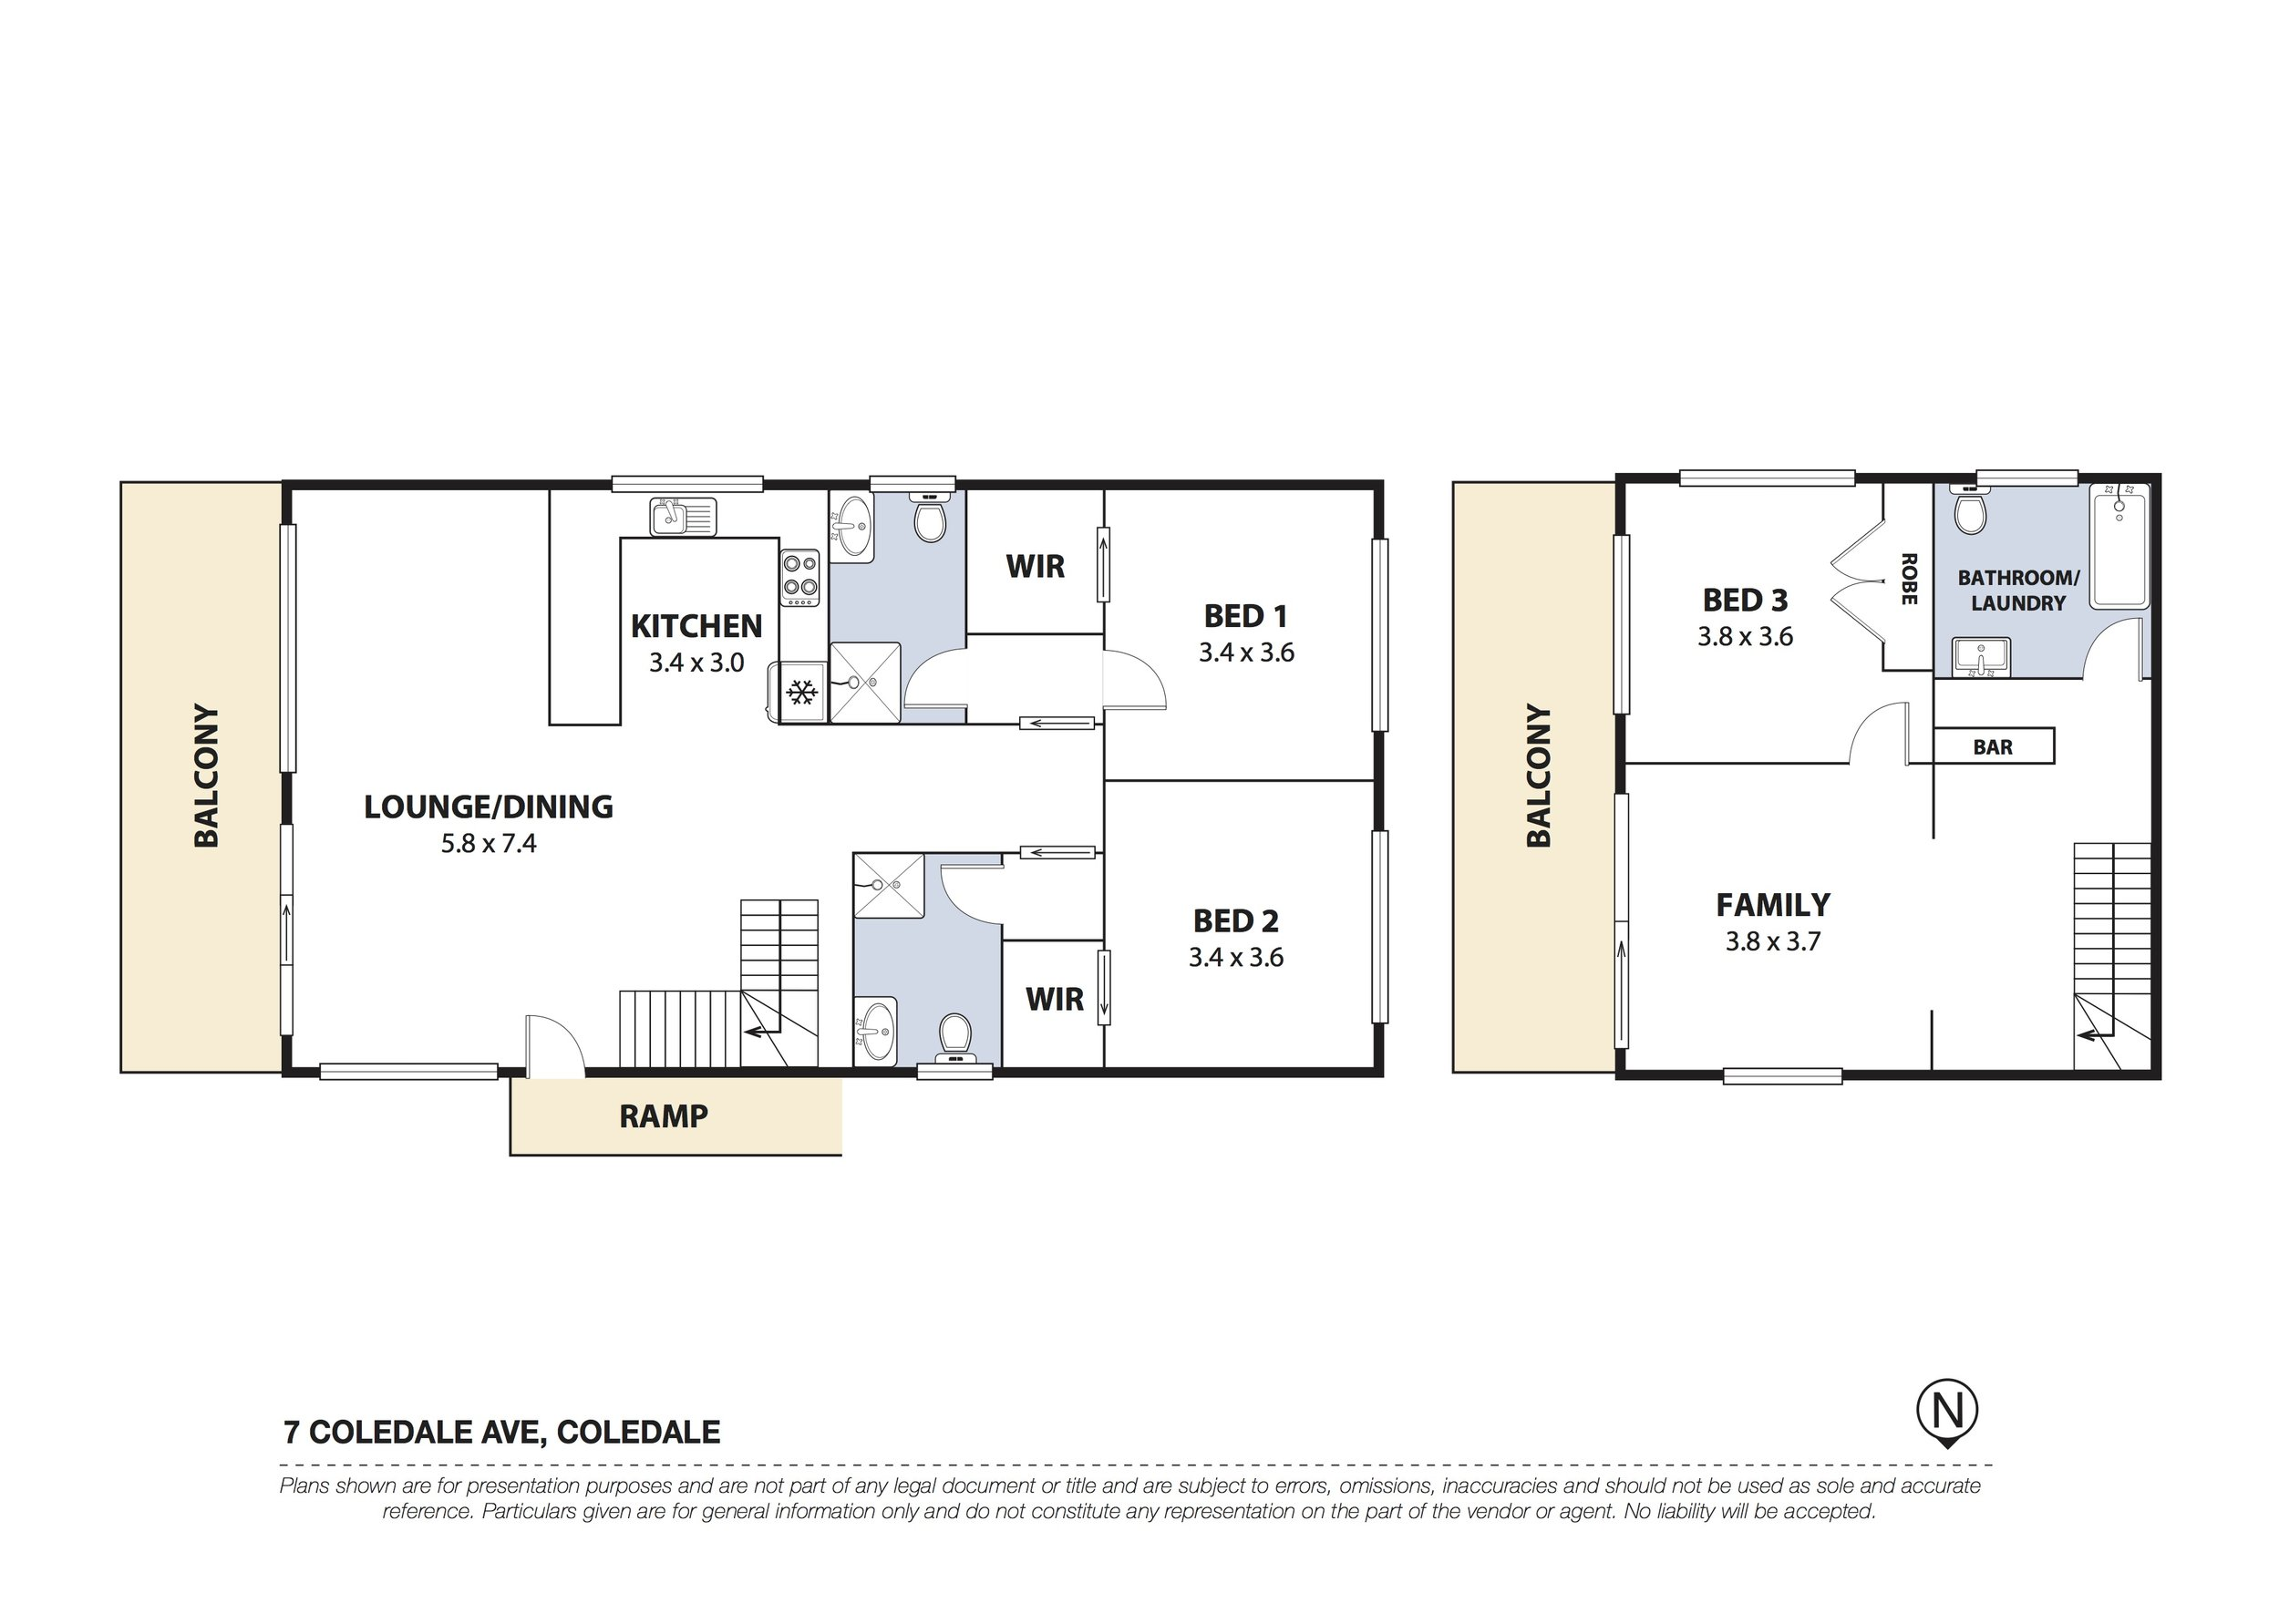 7 Coledale Ave Coledale.jpg